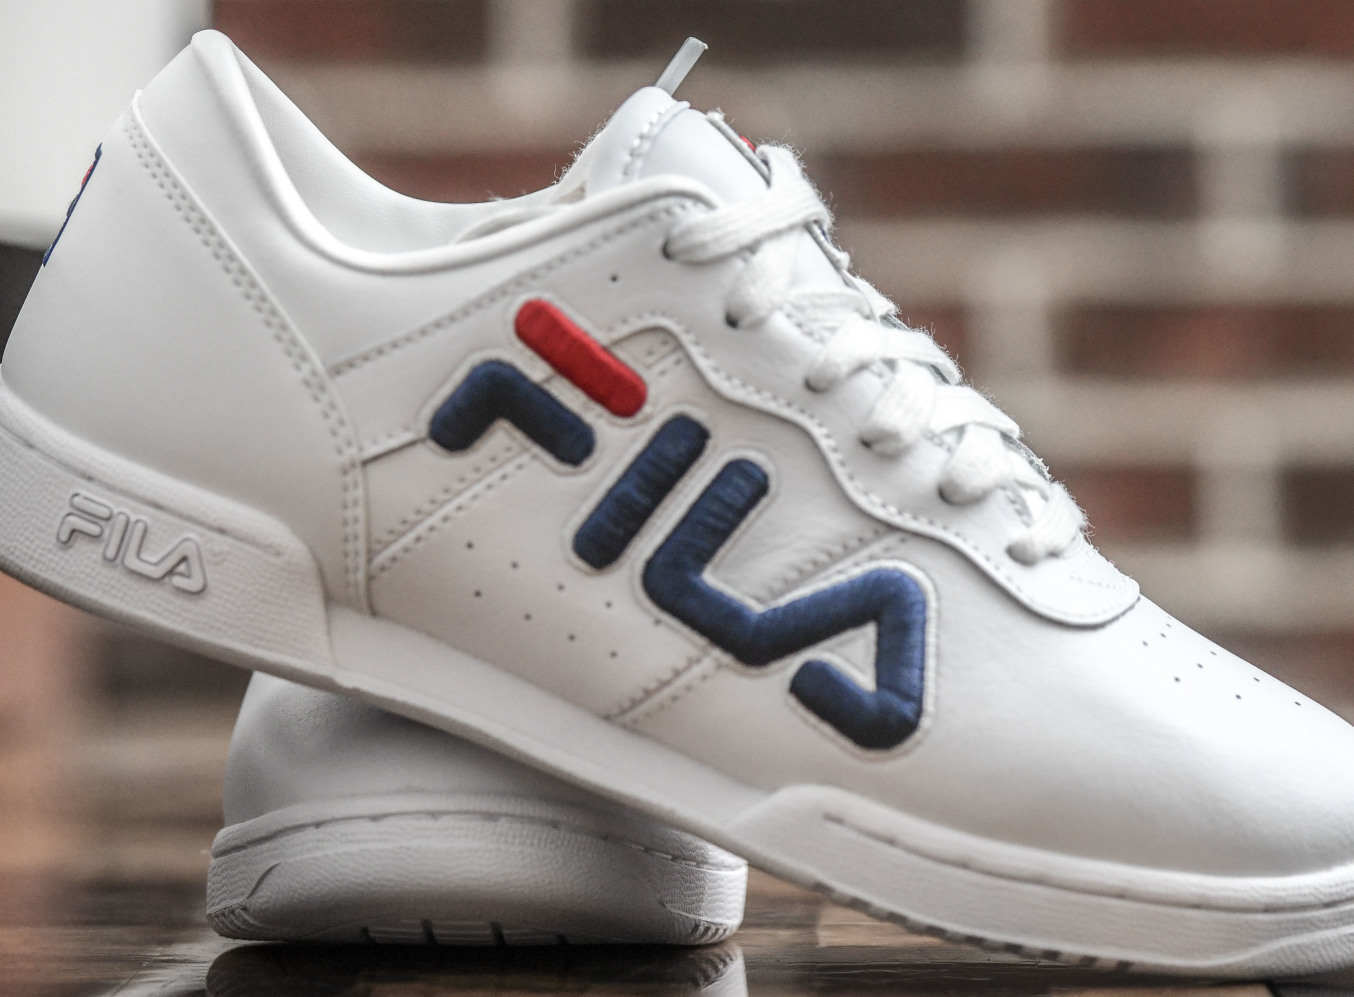 Fila, Baltimore's other sneaker company, is banking on a